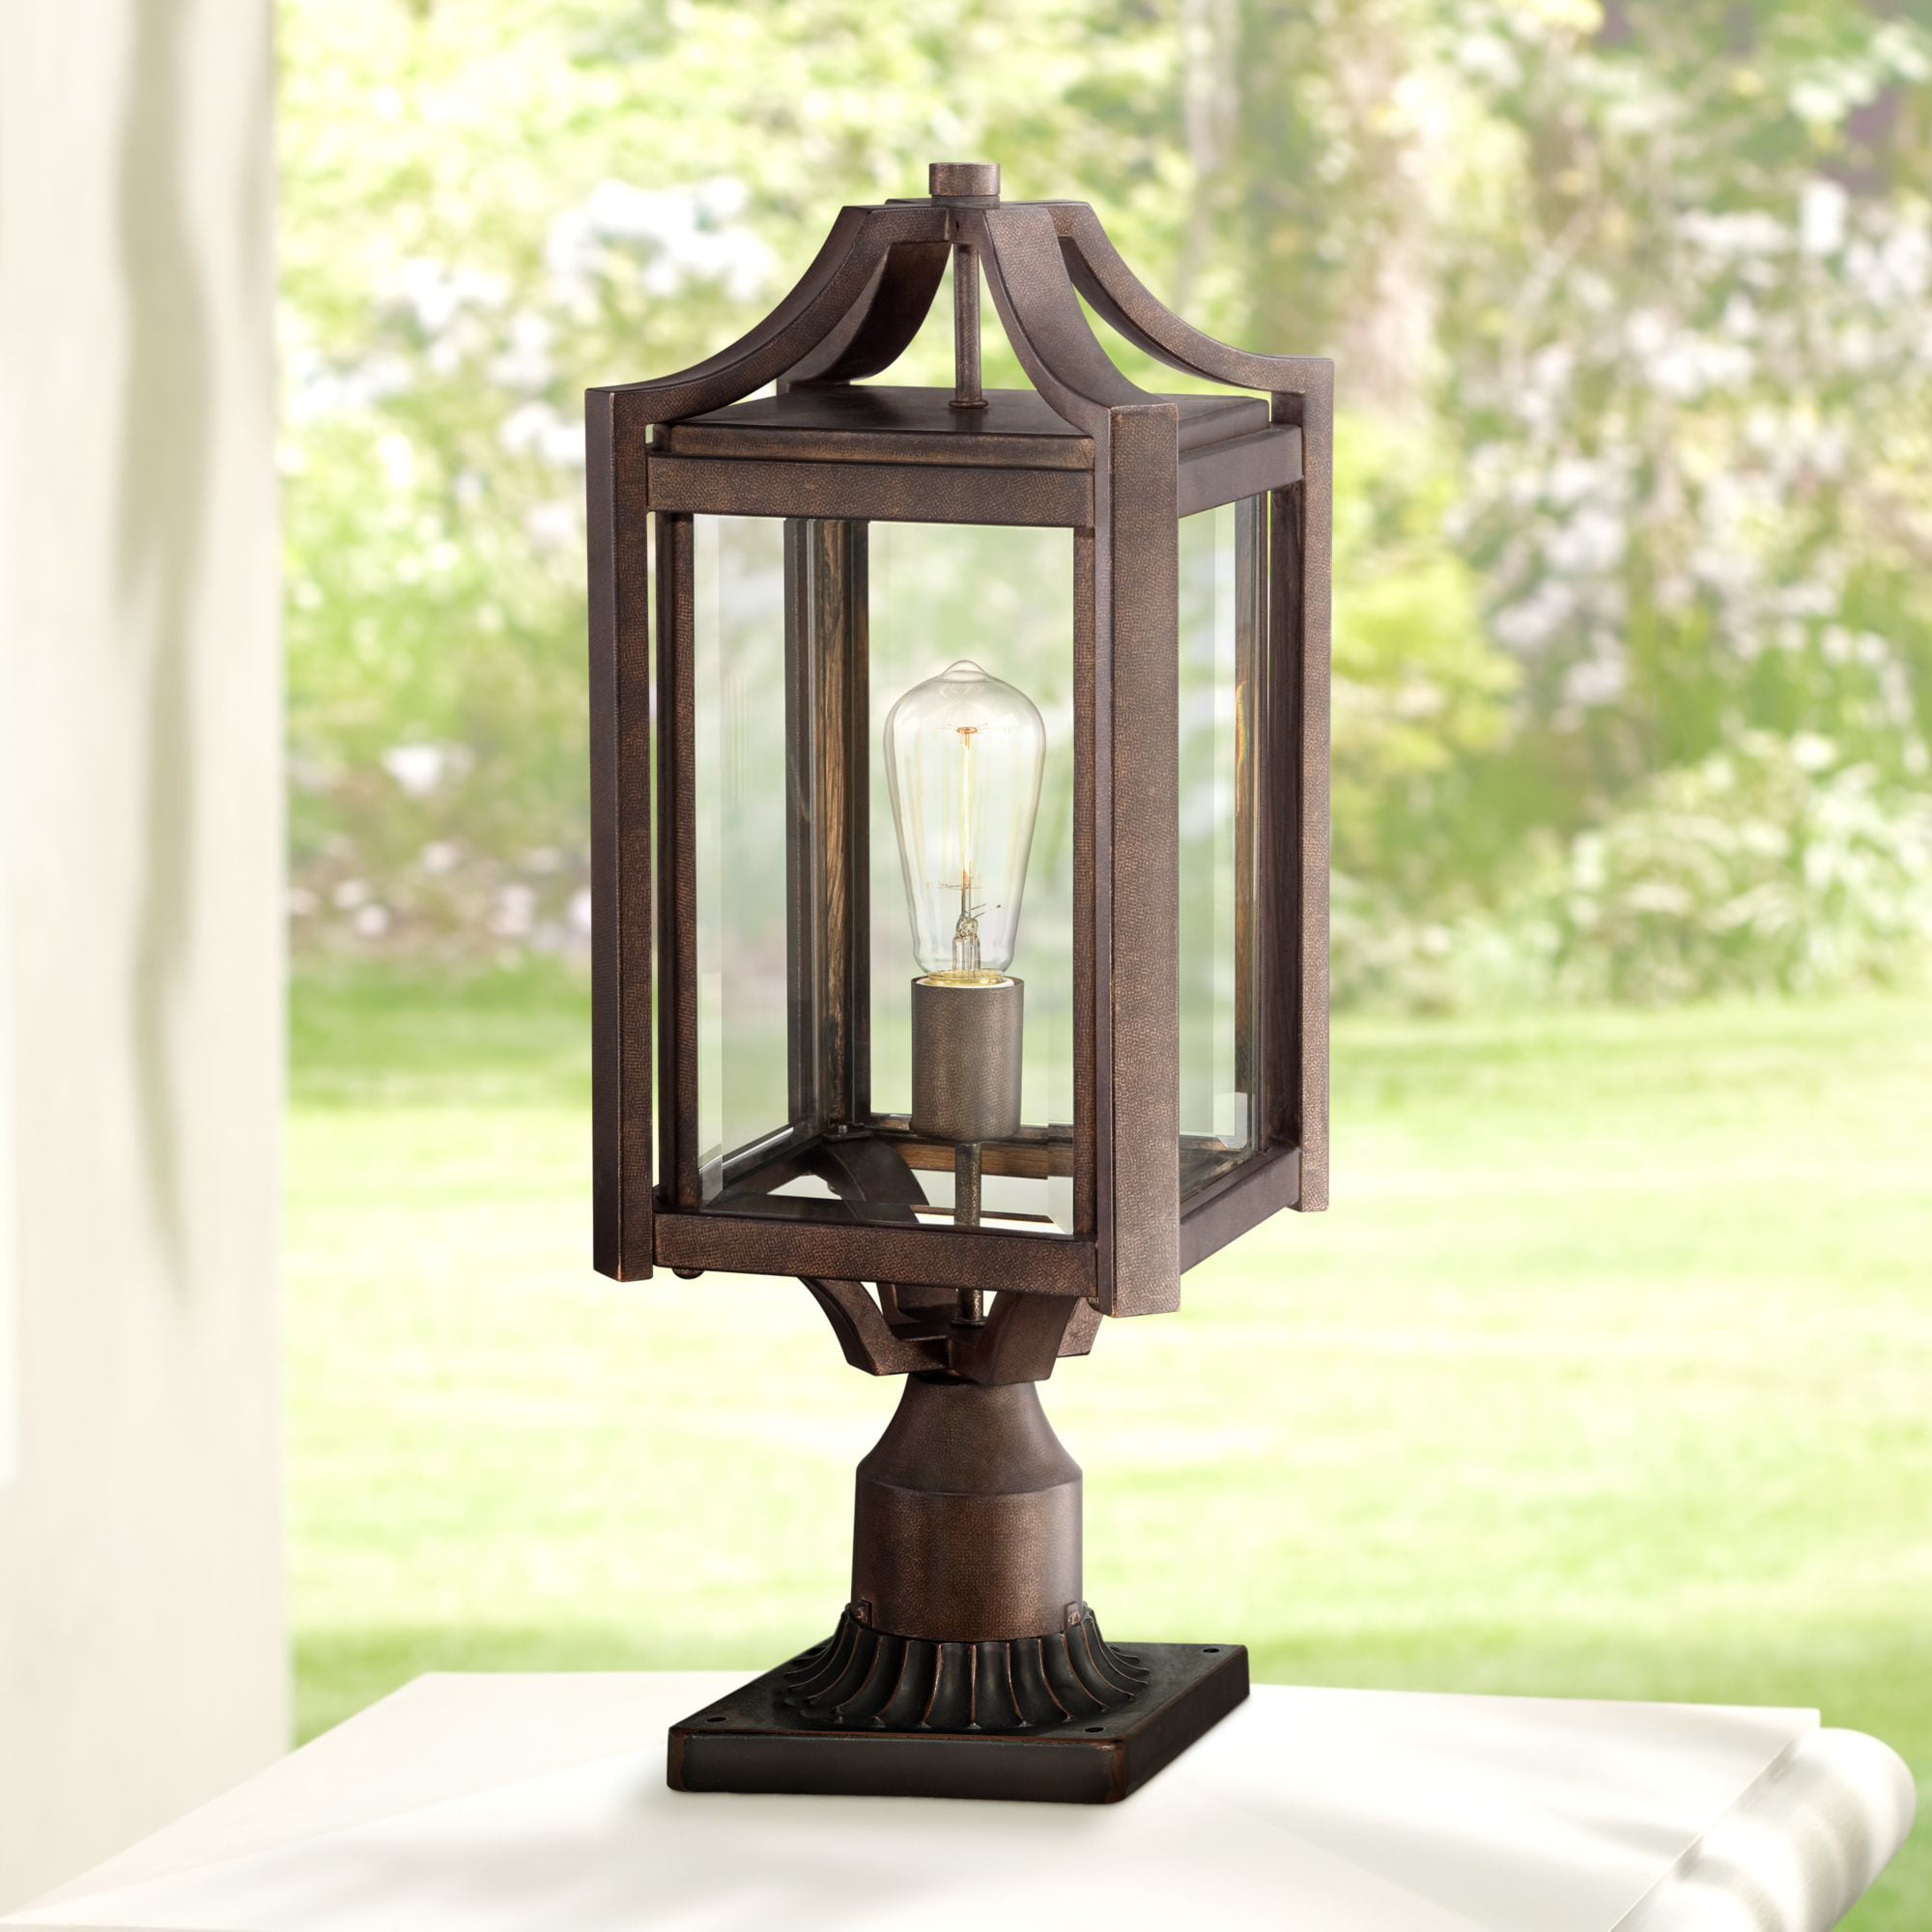 Us Home Exteriors Complaints: Franklin Iron Works Rustic Farmhouse Outdoor Post Light